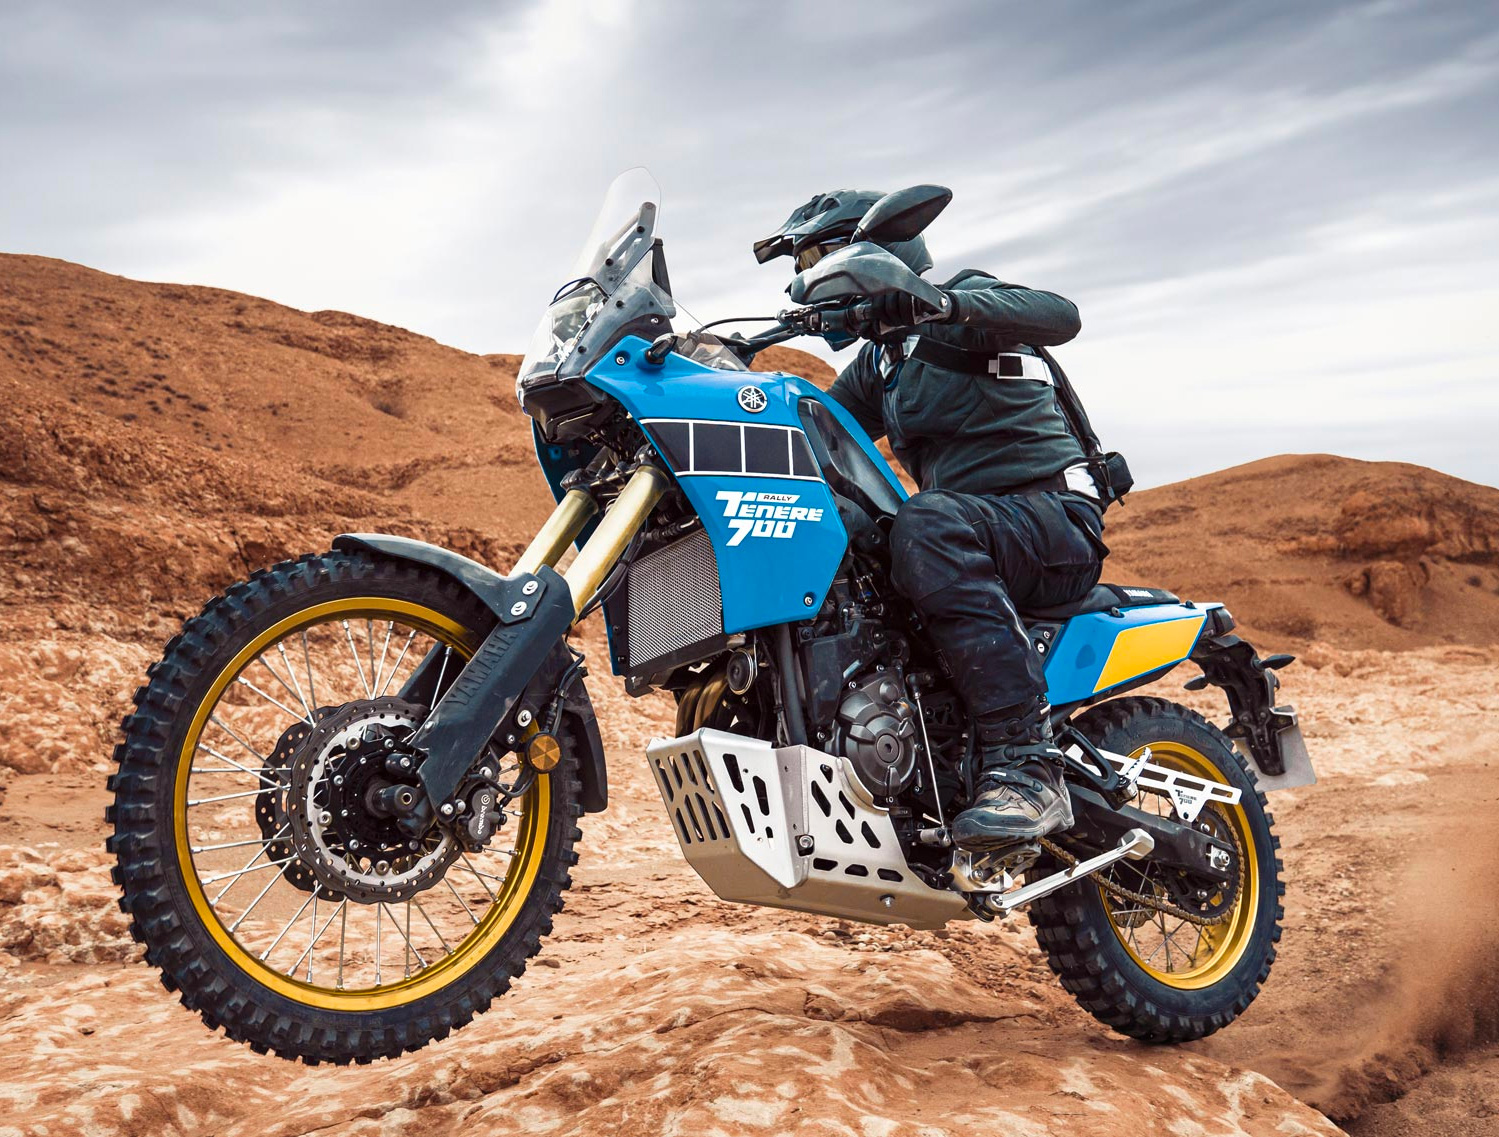 Yamaha's 2021 Ténéré 700 Celebrates Legendary Dakar Dominance at werd.com